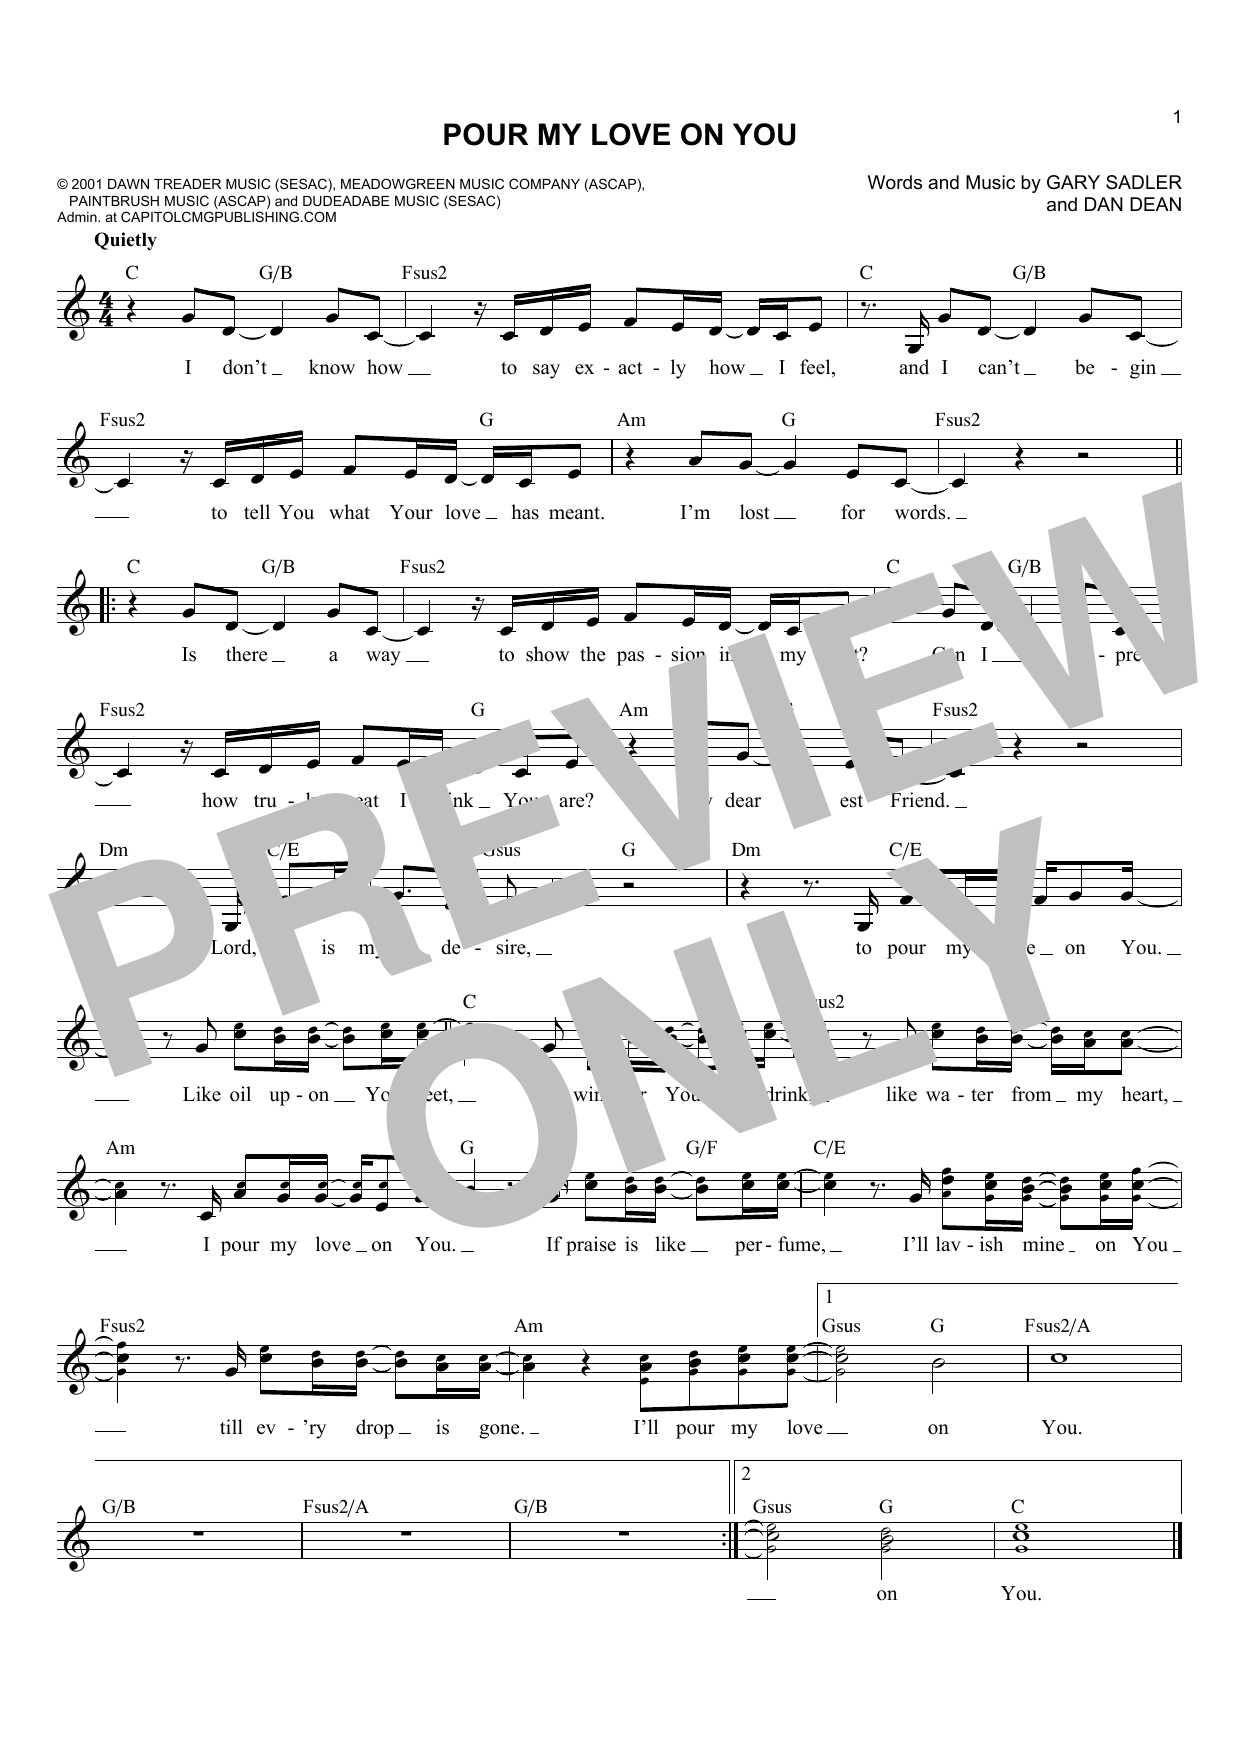 Phillips, Craig and Dean Pour My Love On You sheet music notes and chords. Download Printable PDF.